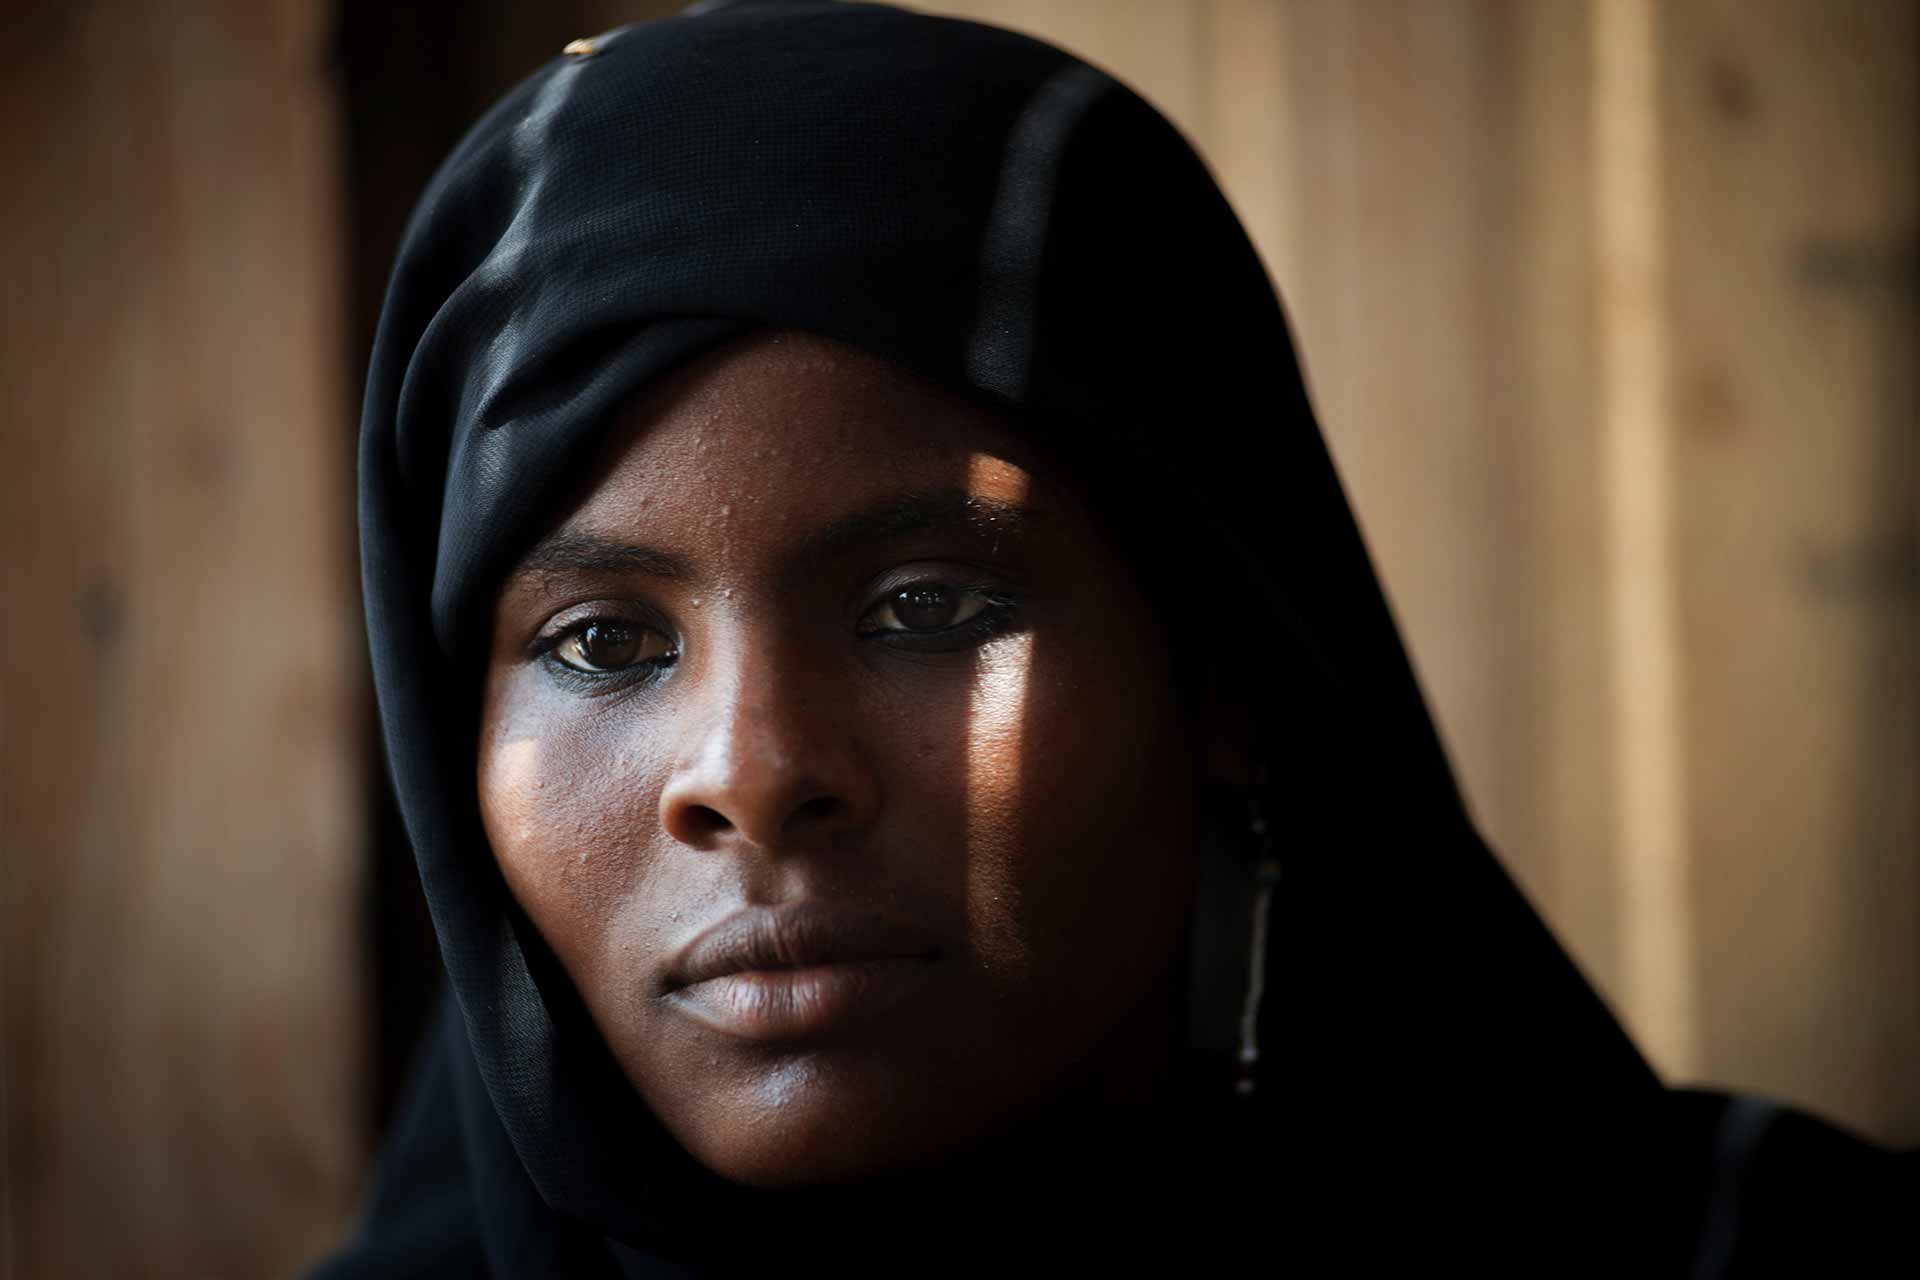 Asrar, 15, fled fighting in the Yemeni port city of Hodediah